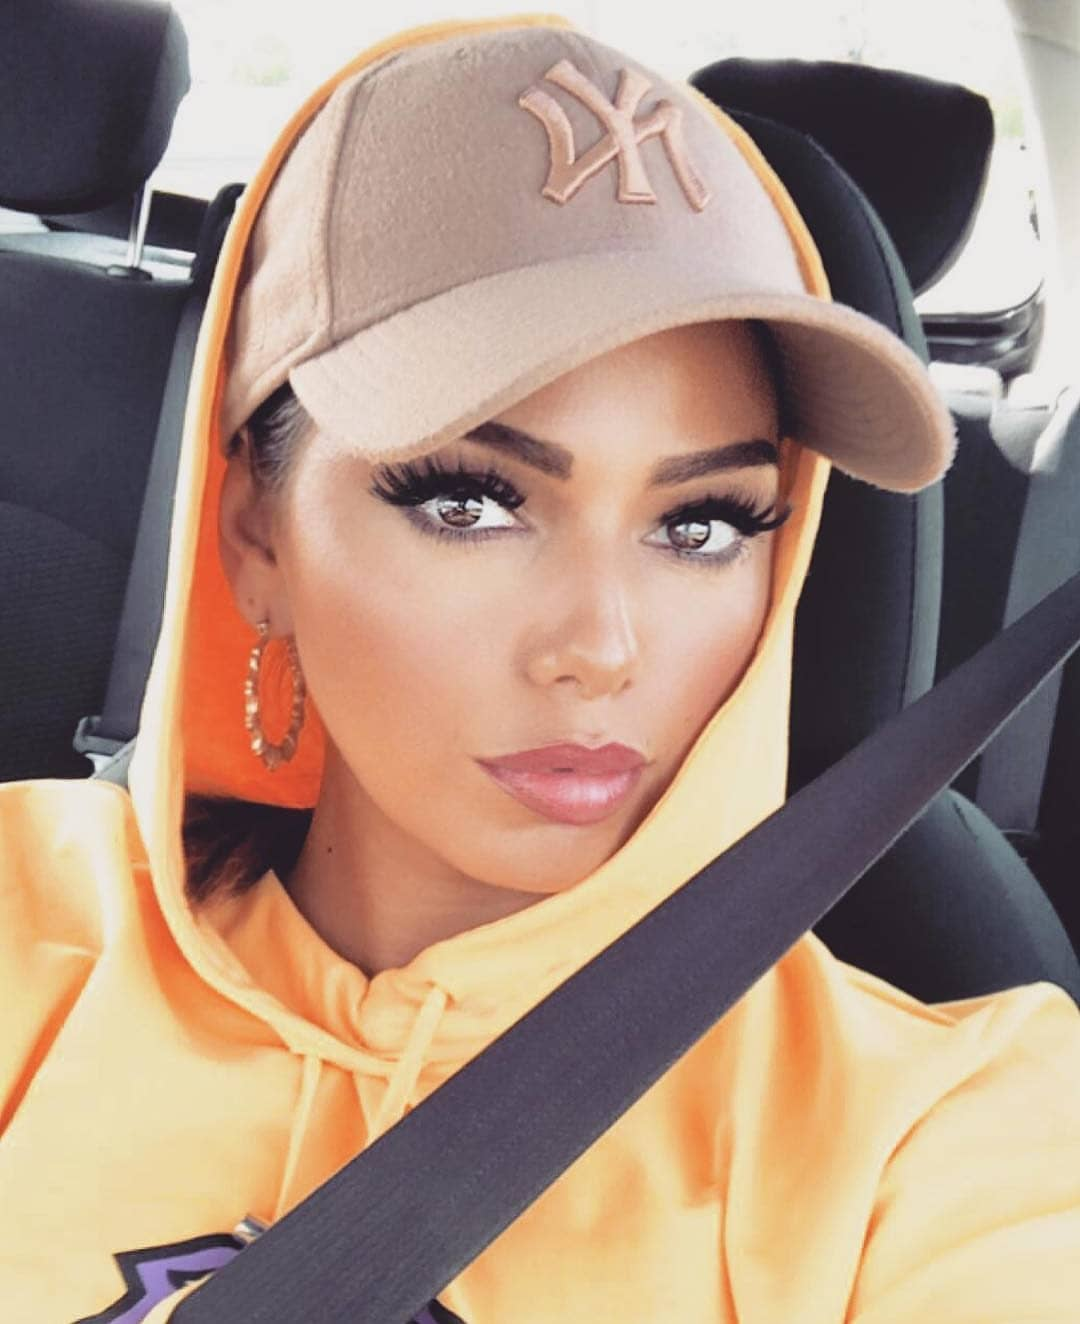 Camel Baseball Cap With Orange Hoodie For Casual Summer Road Trips 2019